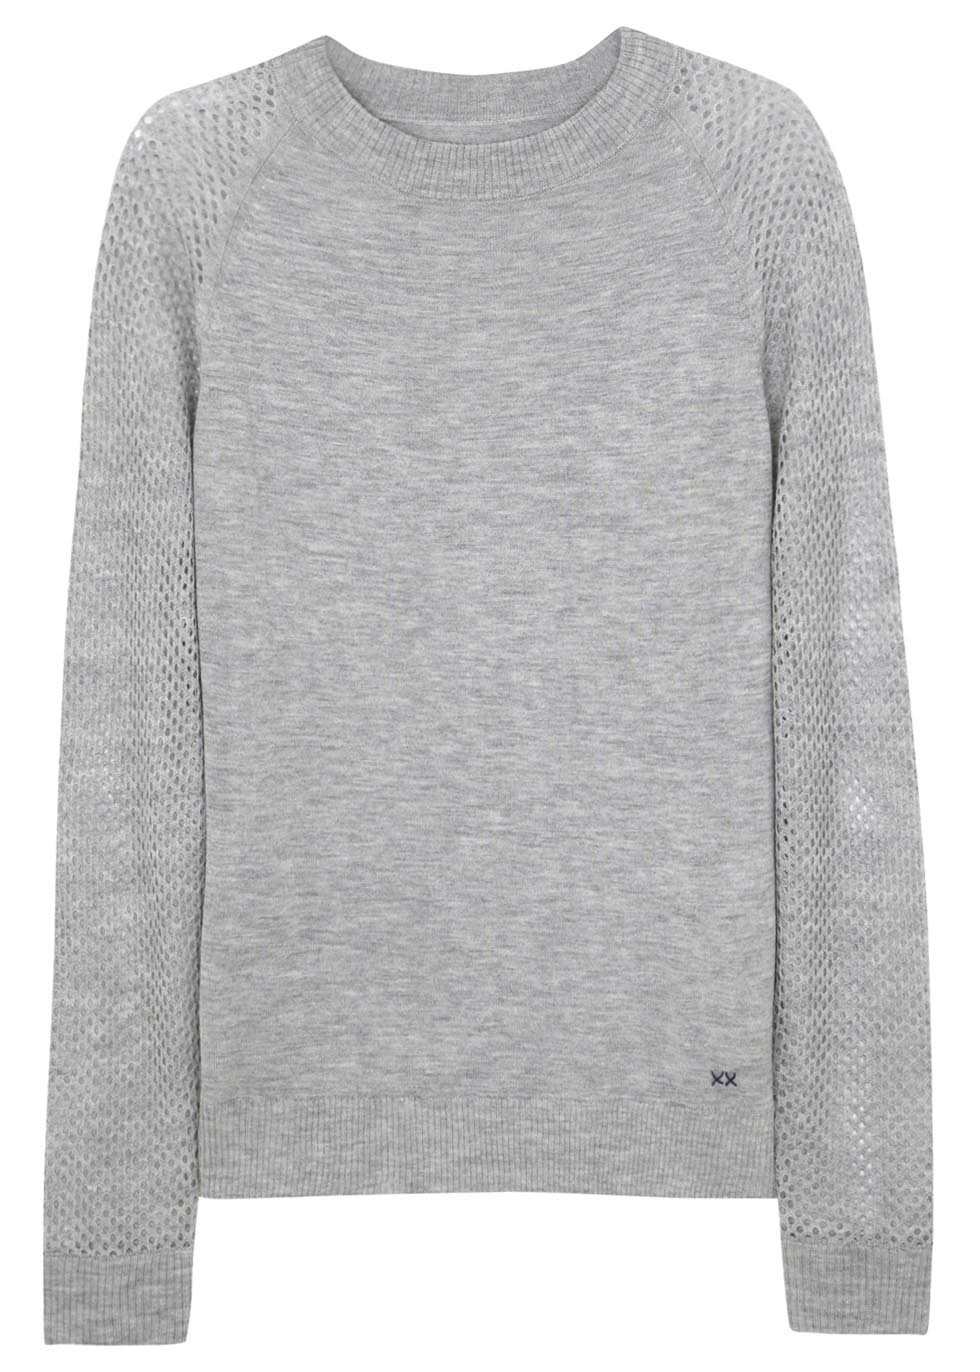 Banjo   Matilda Light Grey Perforated Silk and Cashmere Jumper in ... f5ca9a29273